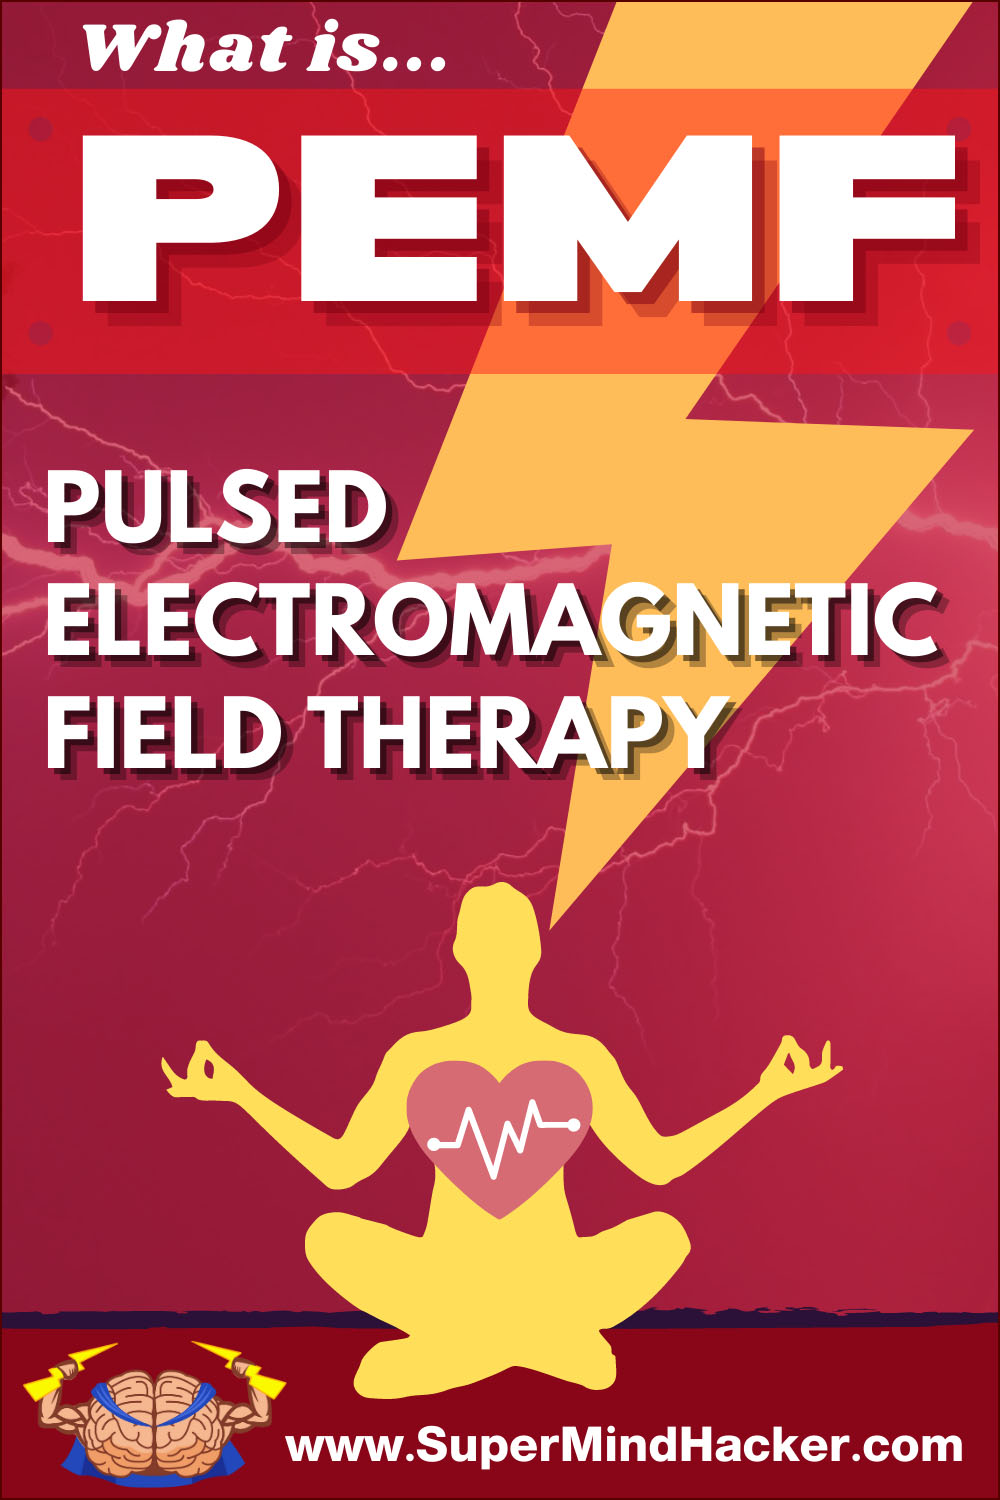 What is PEMF Therapy? 12 Ways Pulsed Electromagnetic Field Therapy Can Supercharge Your Health!